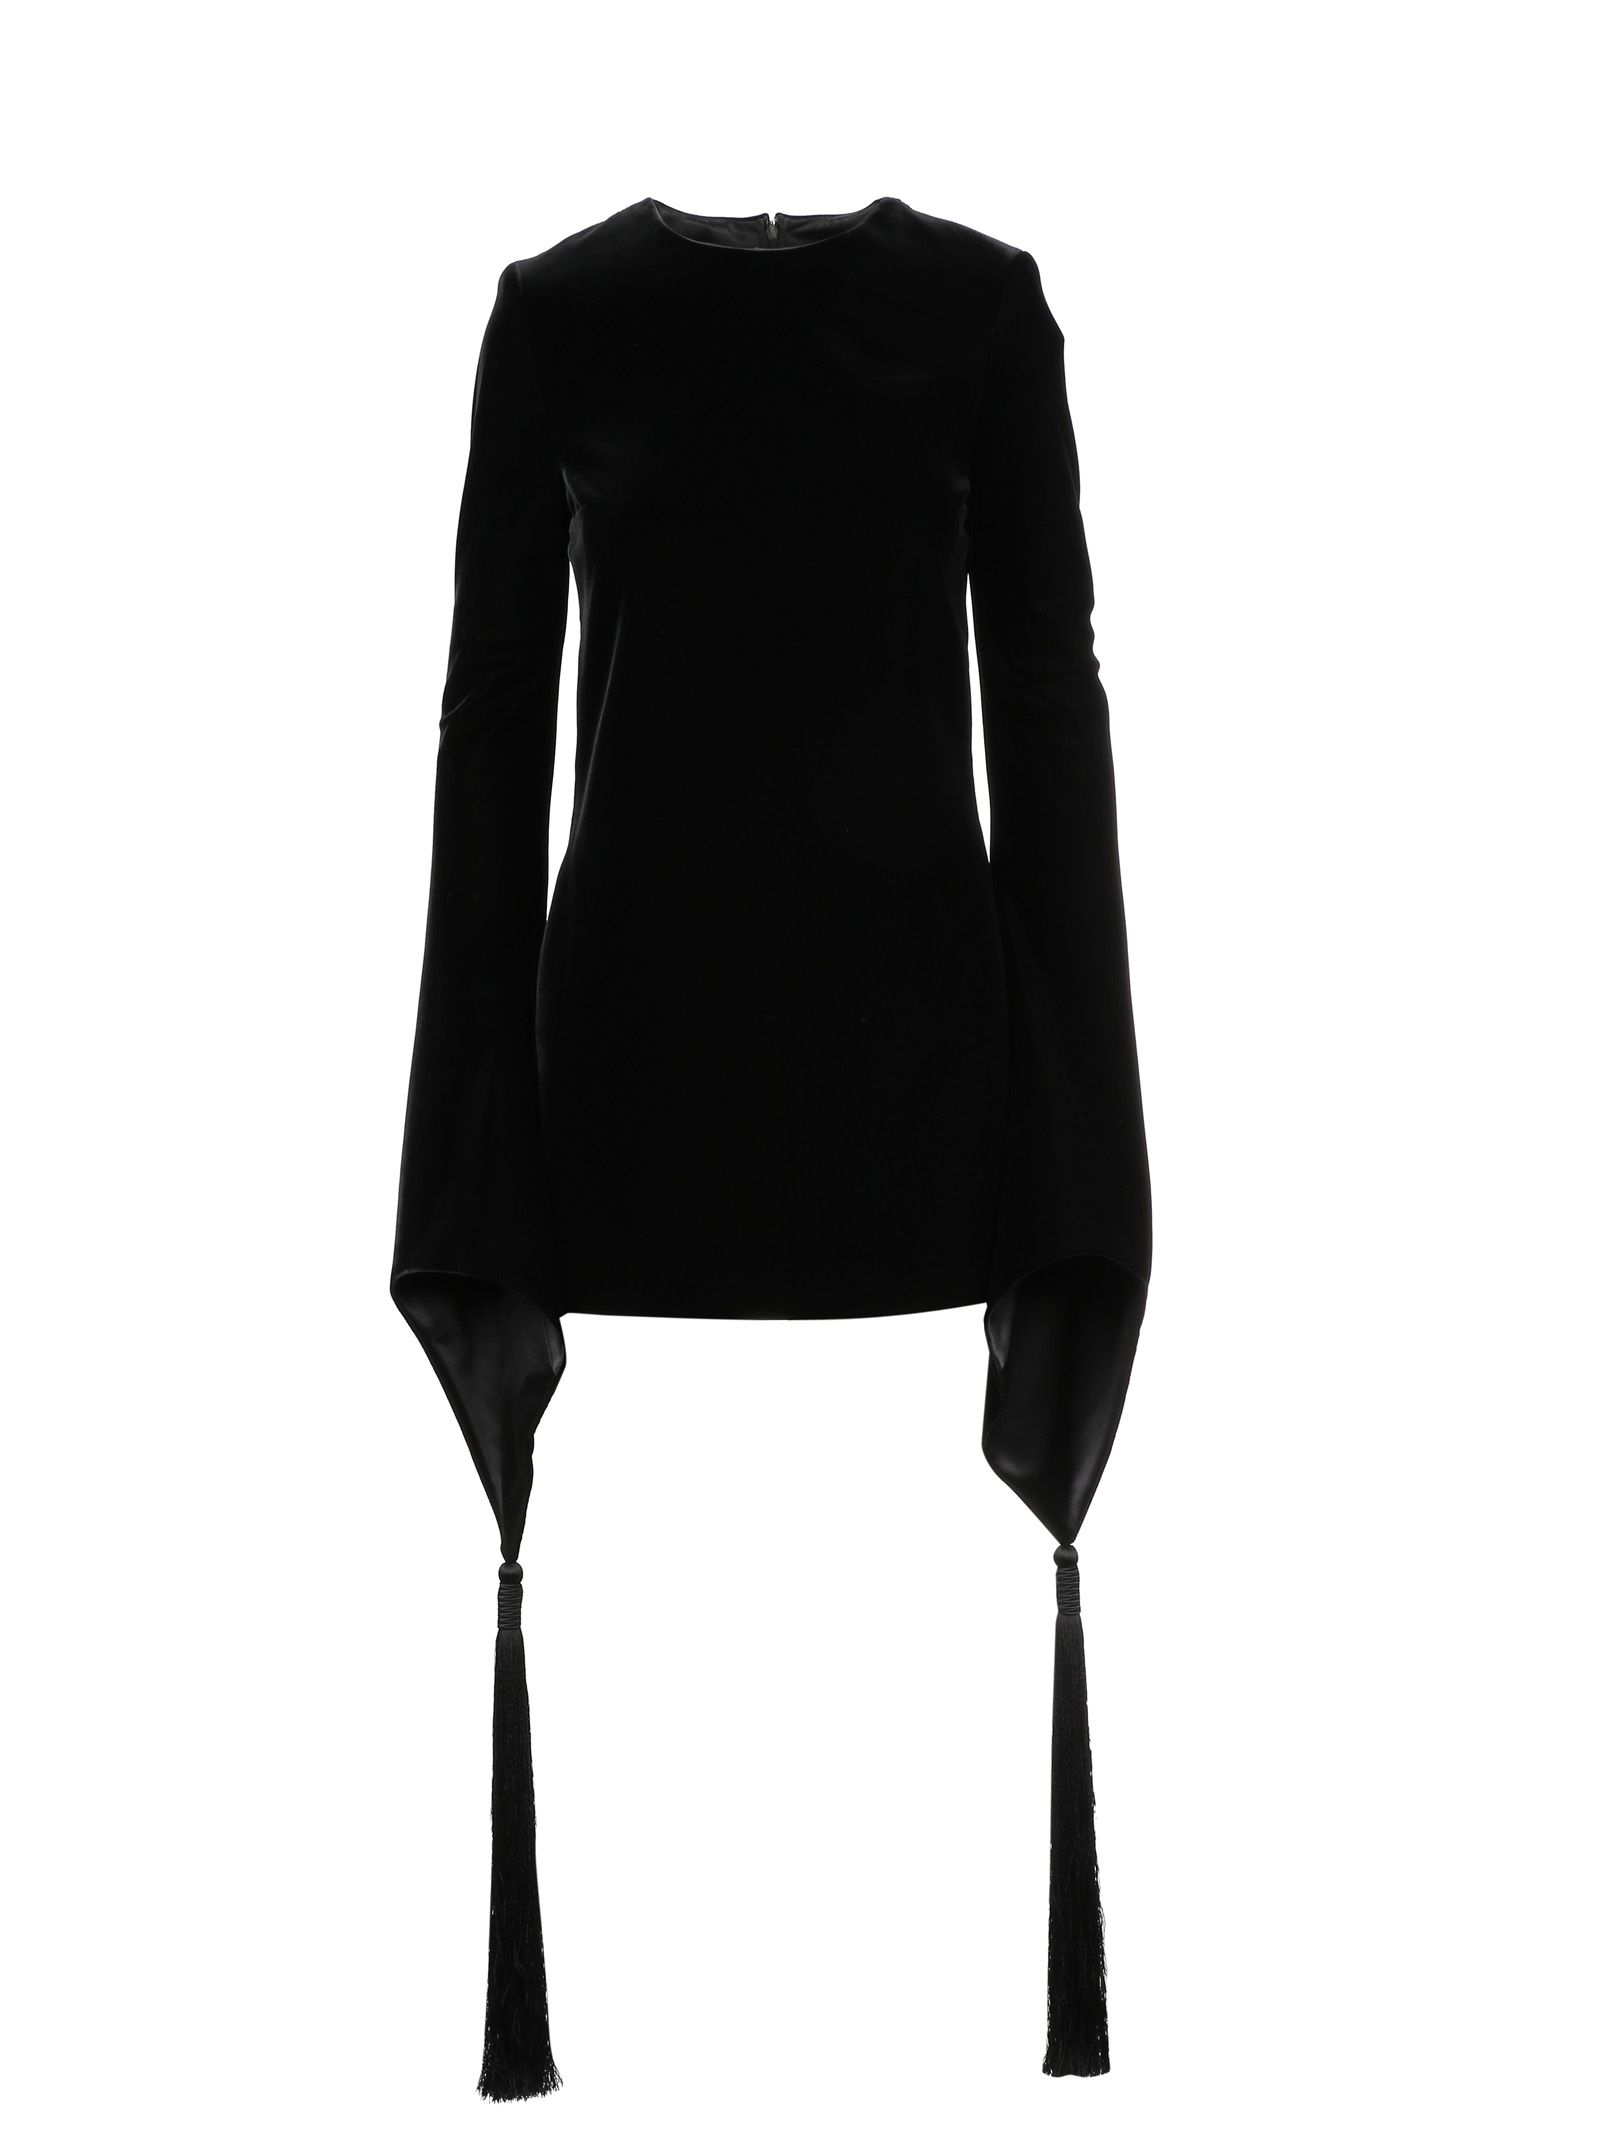 Silk Velvet Mini Dress W/ Tassels in Black from Al Duca d'Aosta